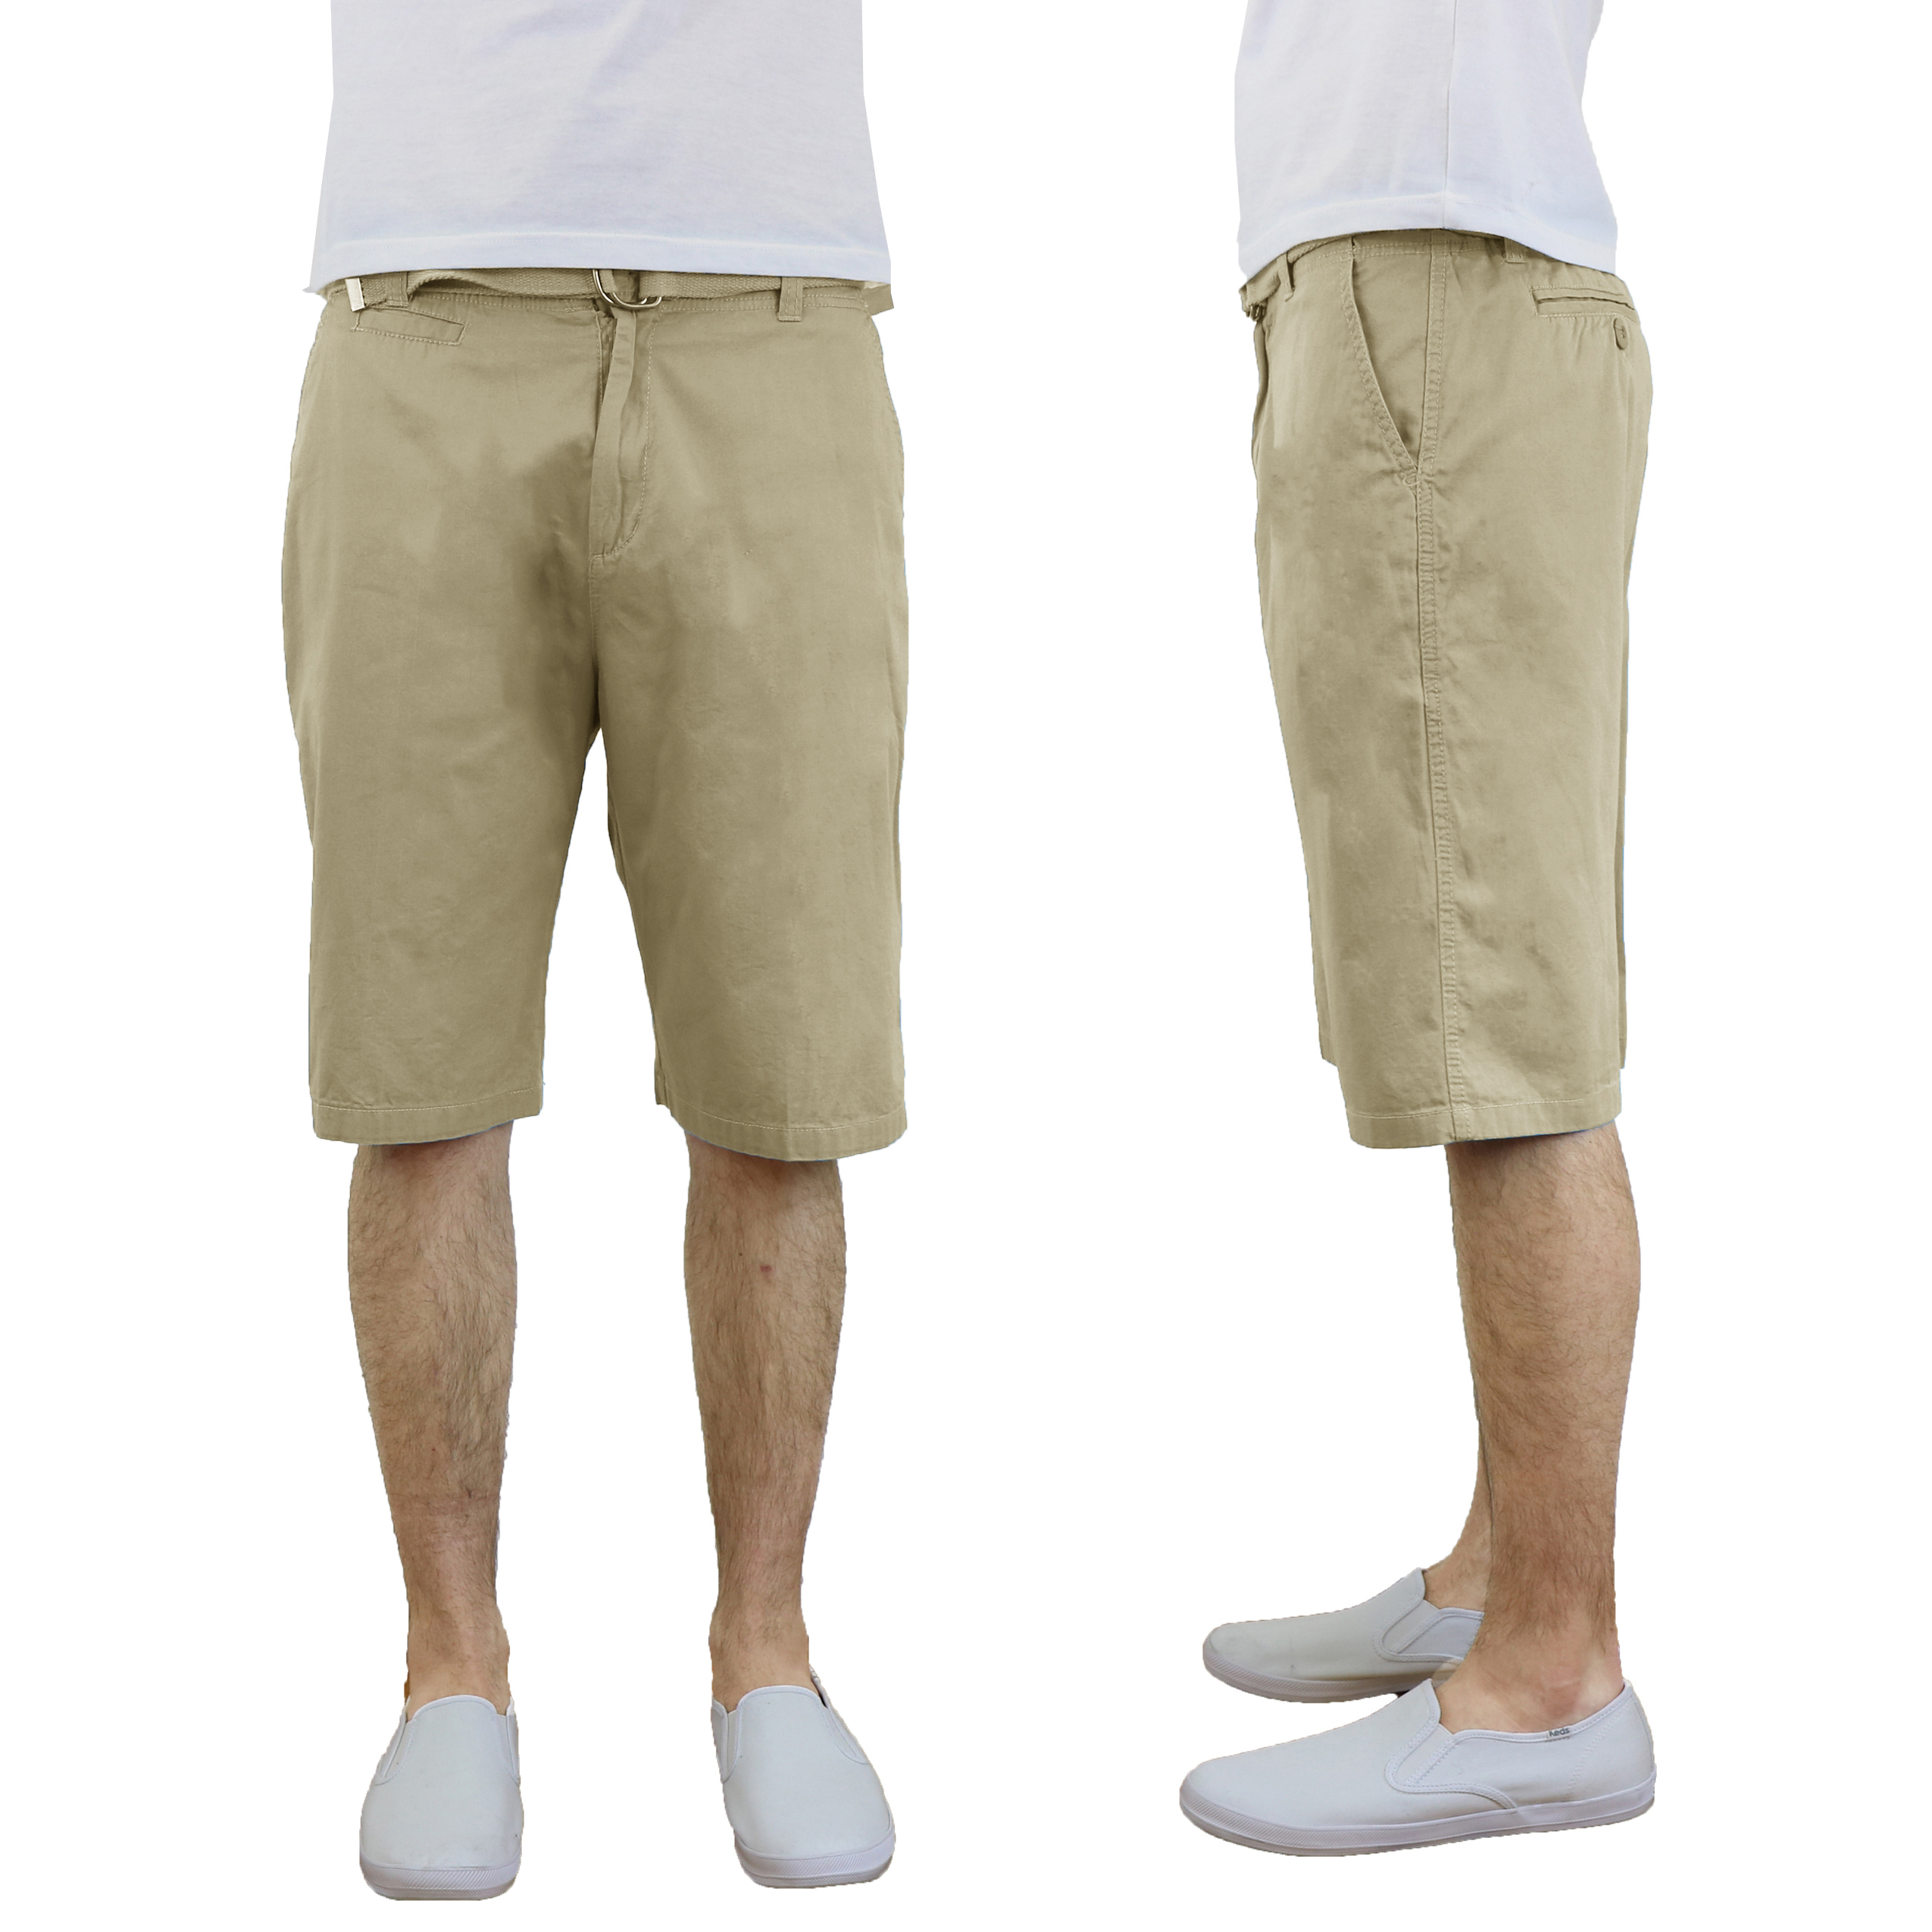 Men's Harvic 100% Cotton Belted Flat Front Chino Shorts